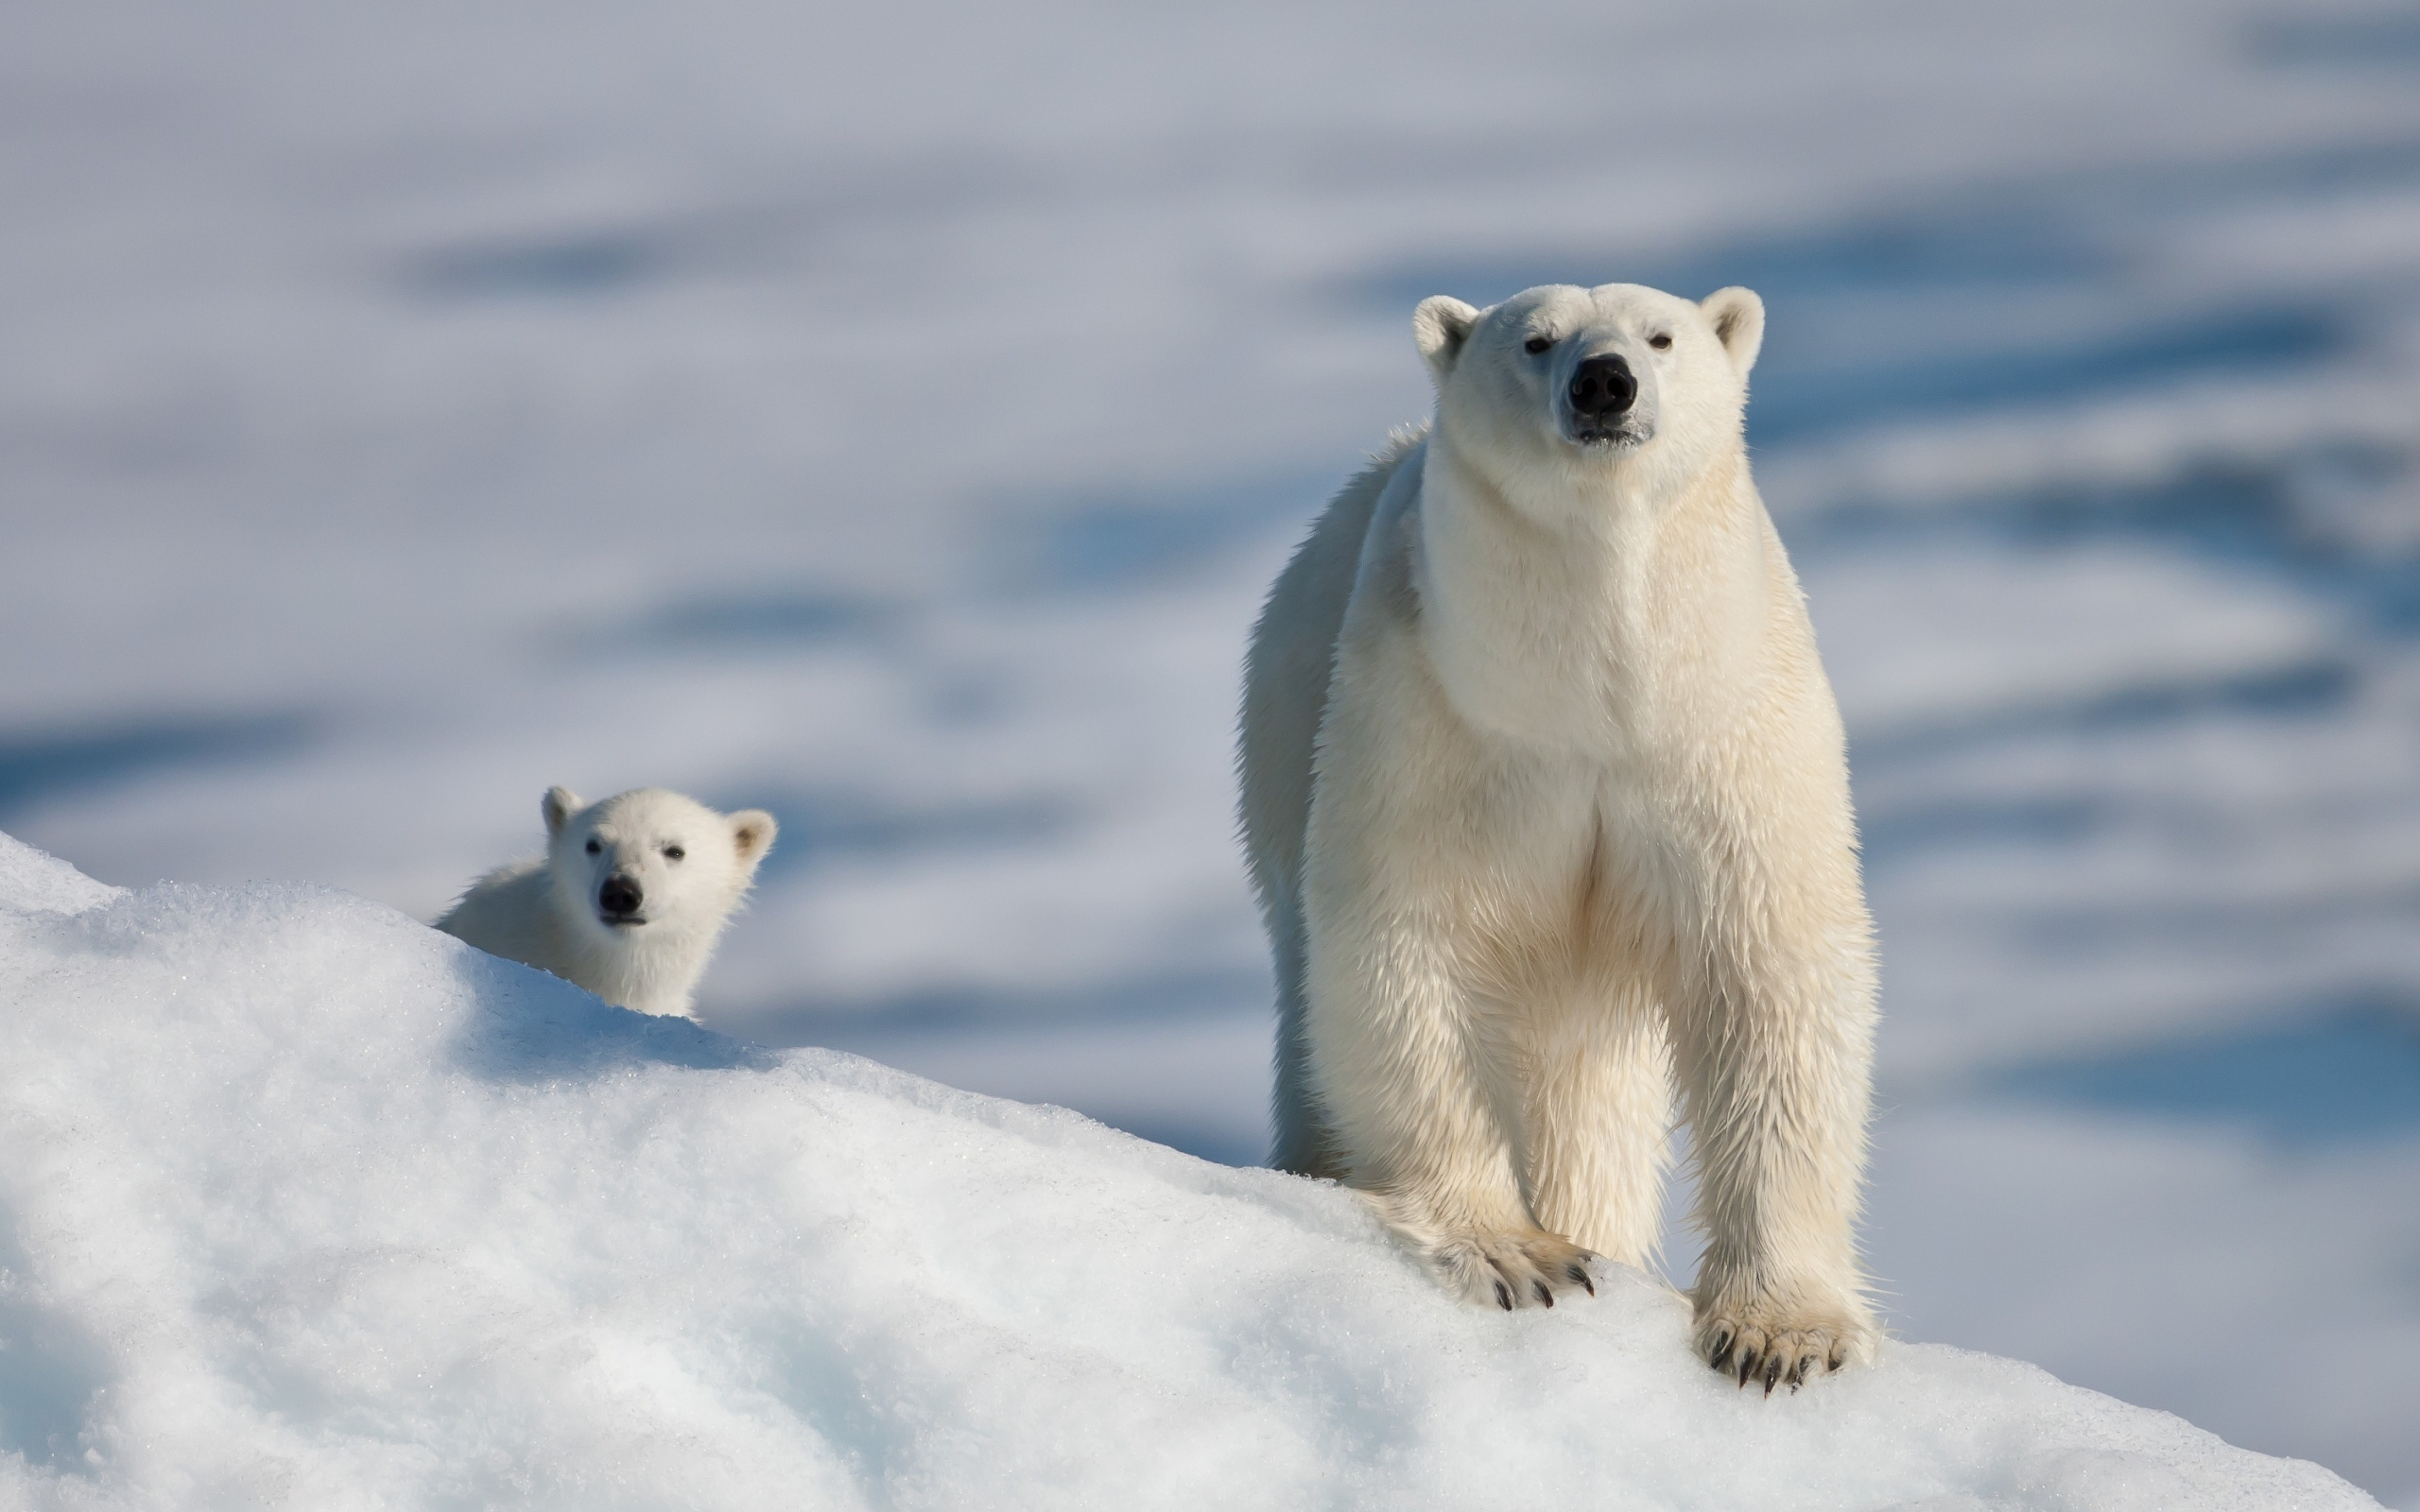 14849 download wallpaper Animals, Winter, Bears screensavers and pictures for free